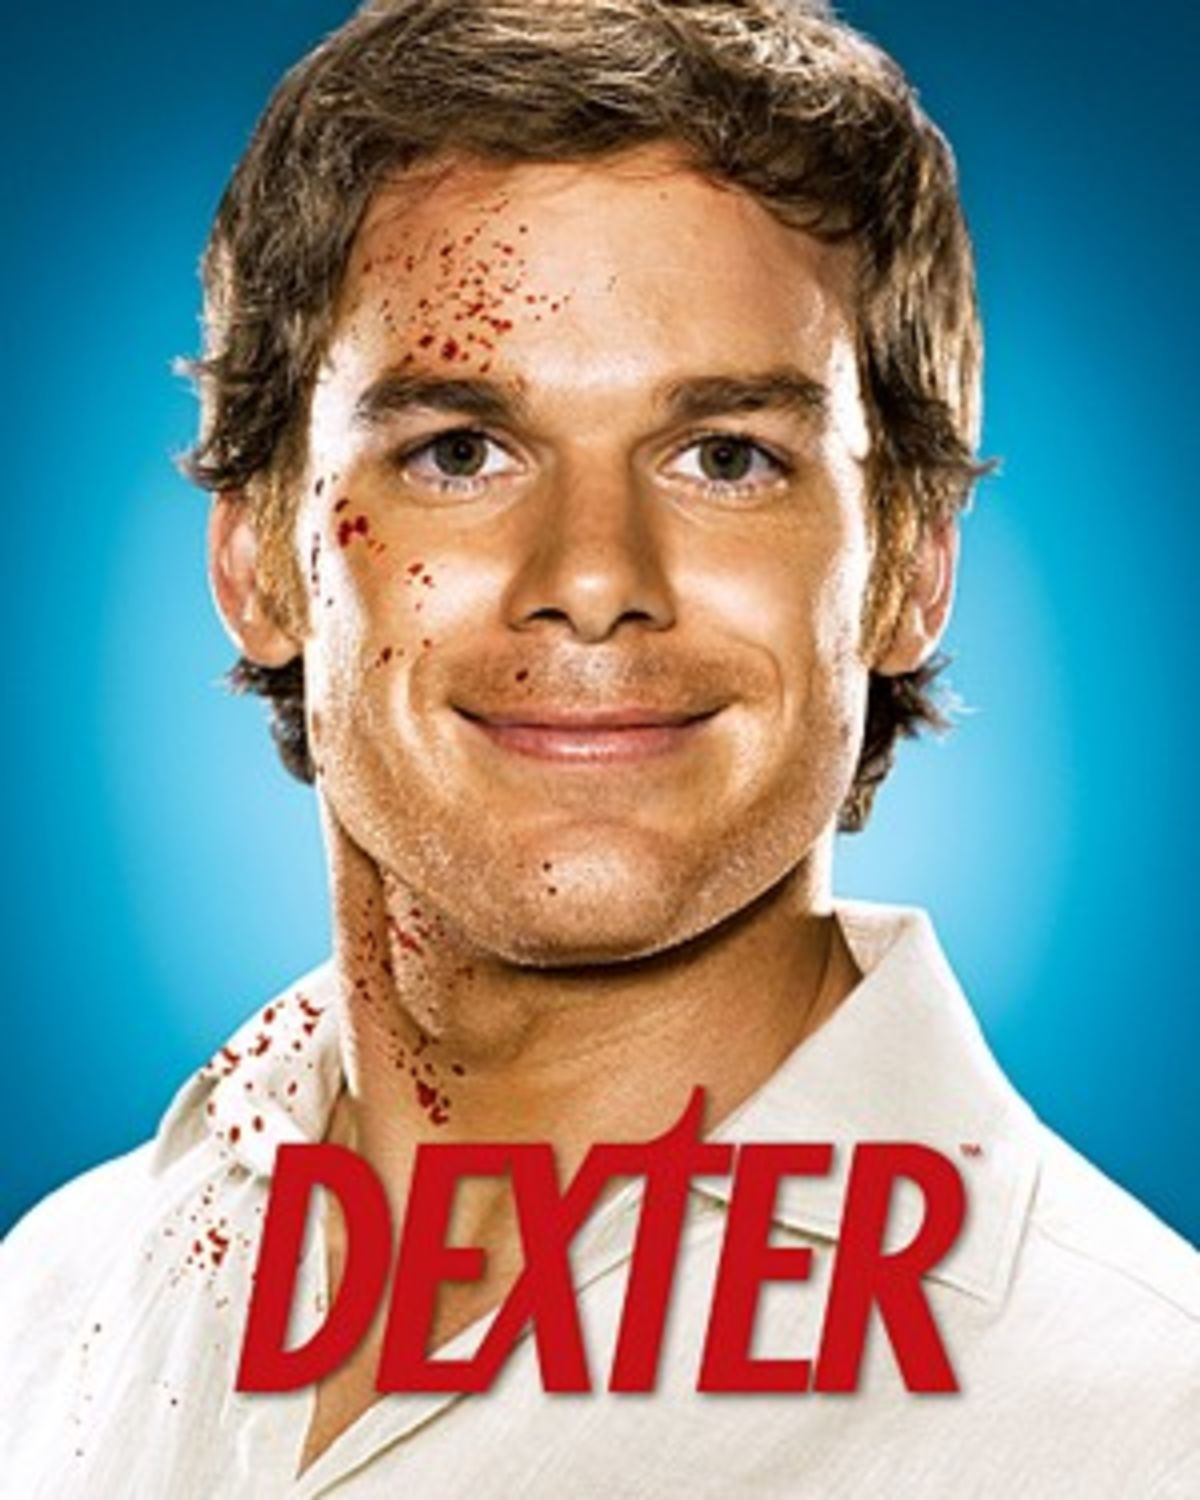 Is Dexter a Successful Psychopath? | Psychology Today